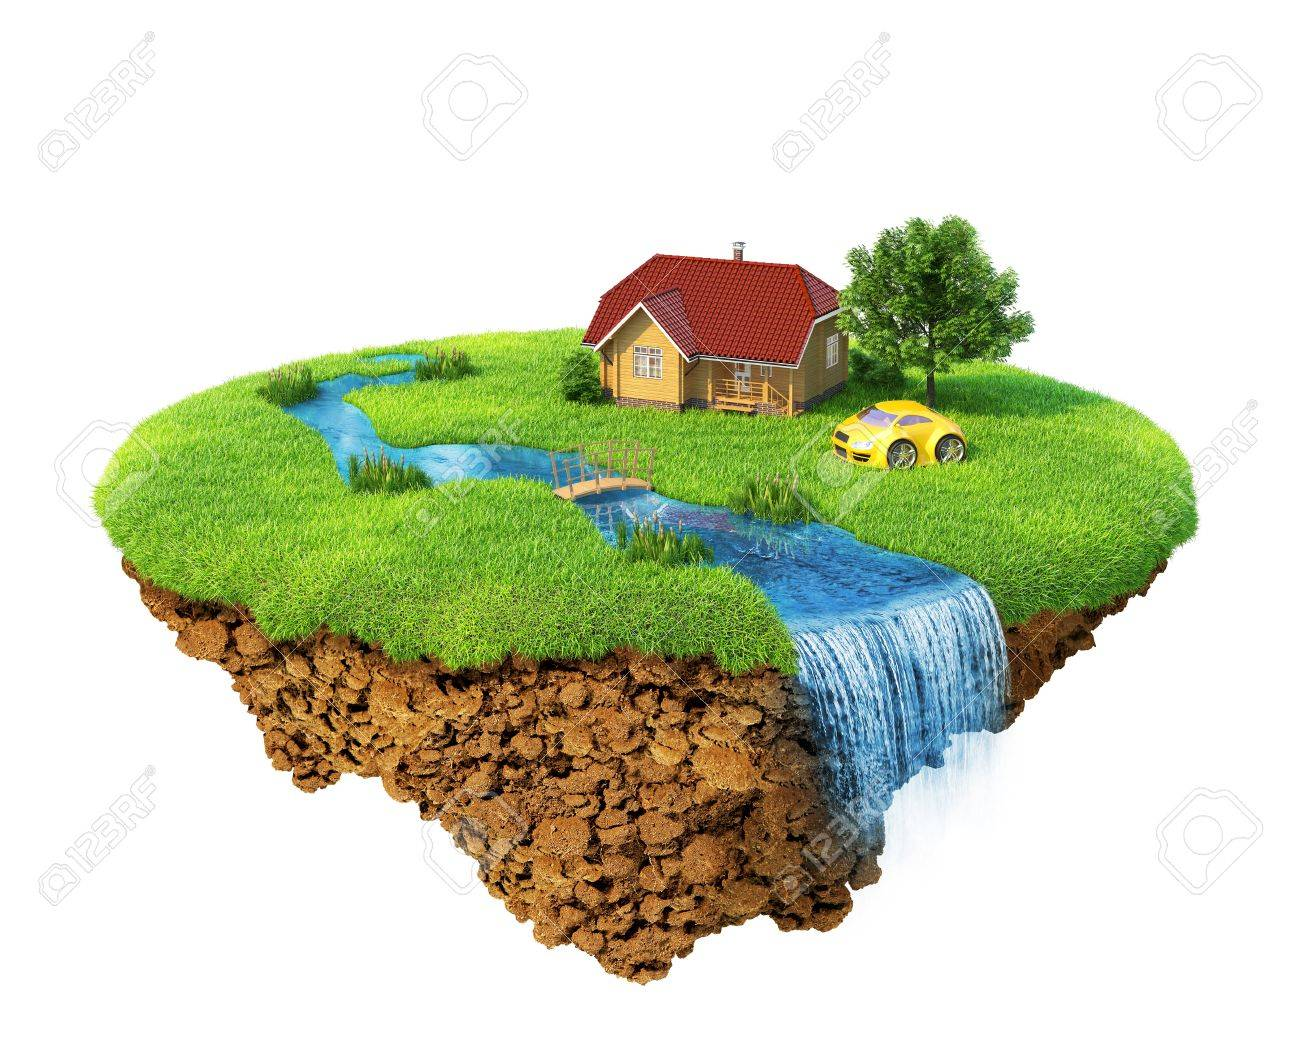 Life of a dream. Lawn with house, river, waterfall, tree and sports car. Fancy island in the air isolated. Detailed ground in the base. Concept of success and happiness, idyllic ecological lifestyle. Stock Photo - 9056615